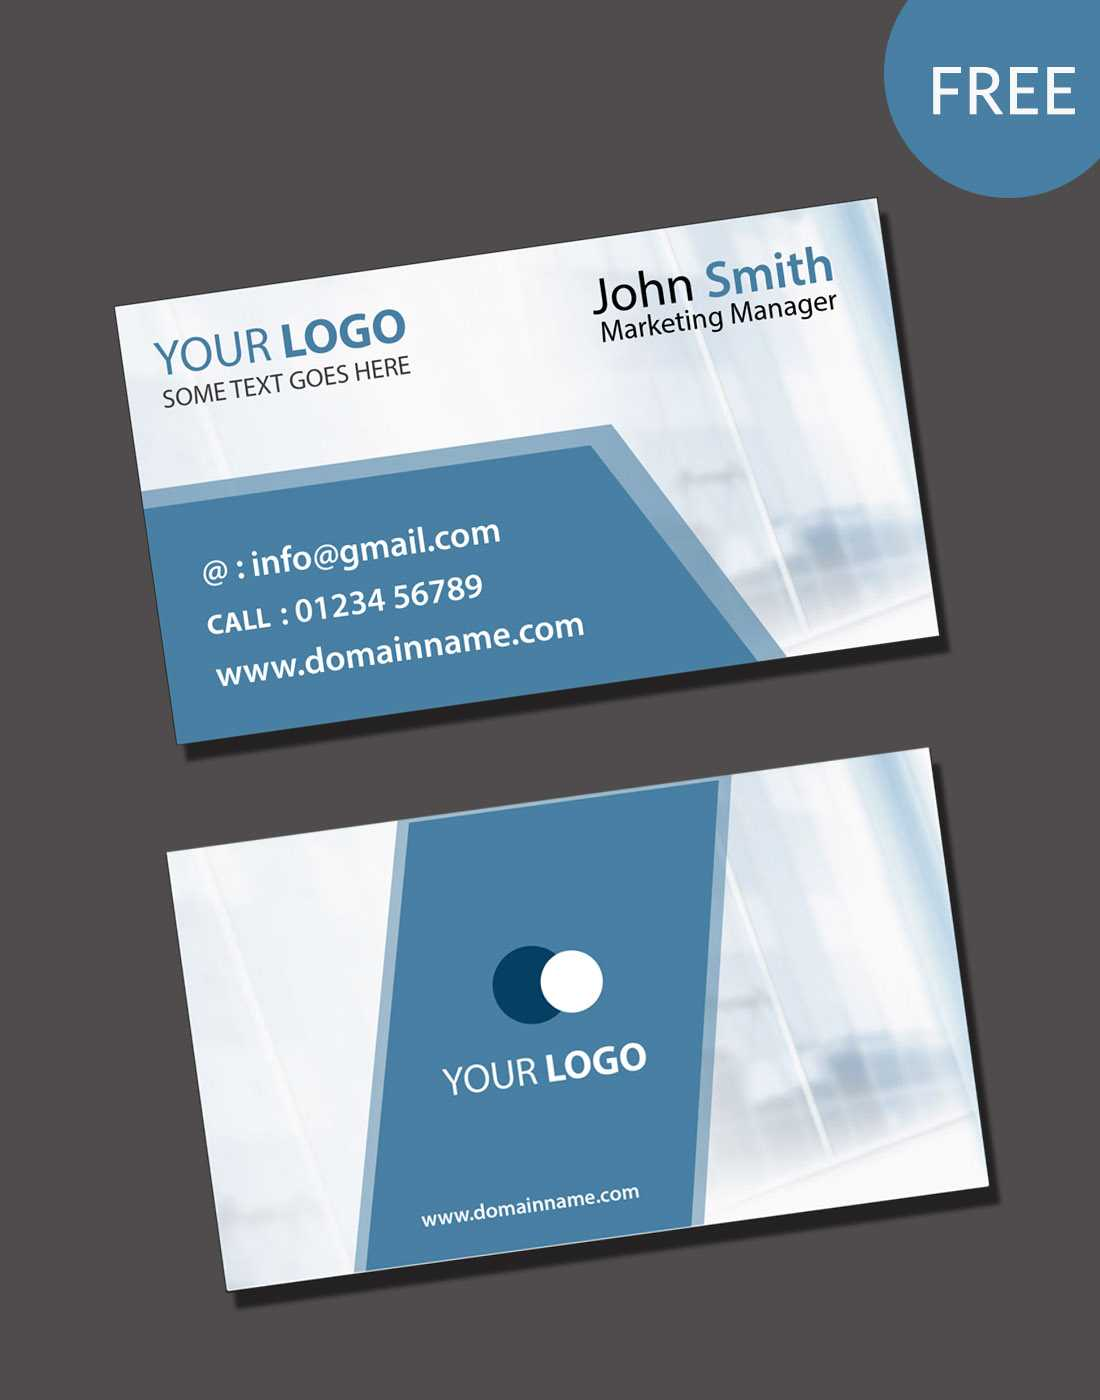 020 Free Blank Business Card Templates Psd Template Download Pertaining To Blank Business Card Template Download